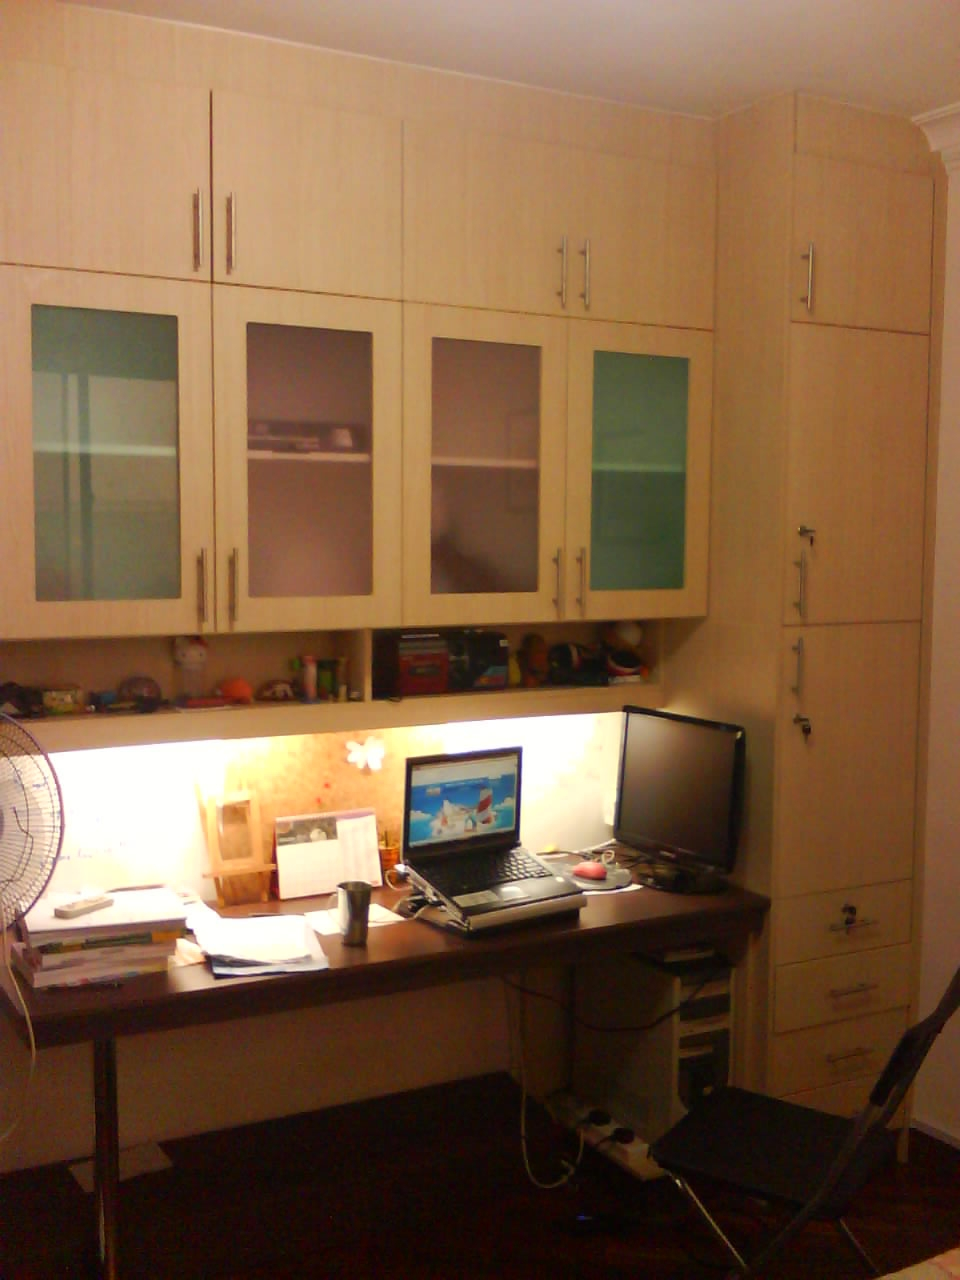 Cupboard Designs Study Room Interior Exterior Doors In Study Room Cupboard Design (View 12 of 15)